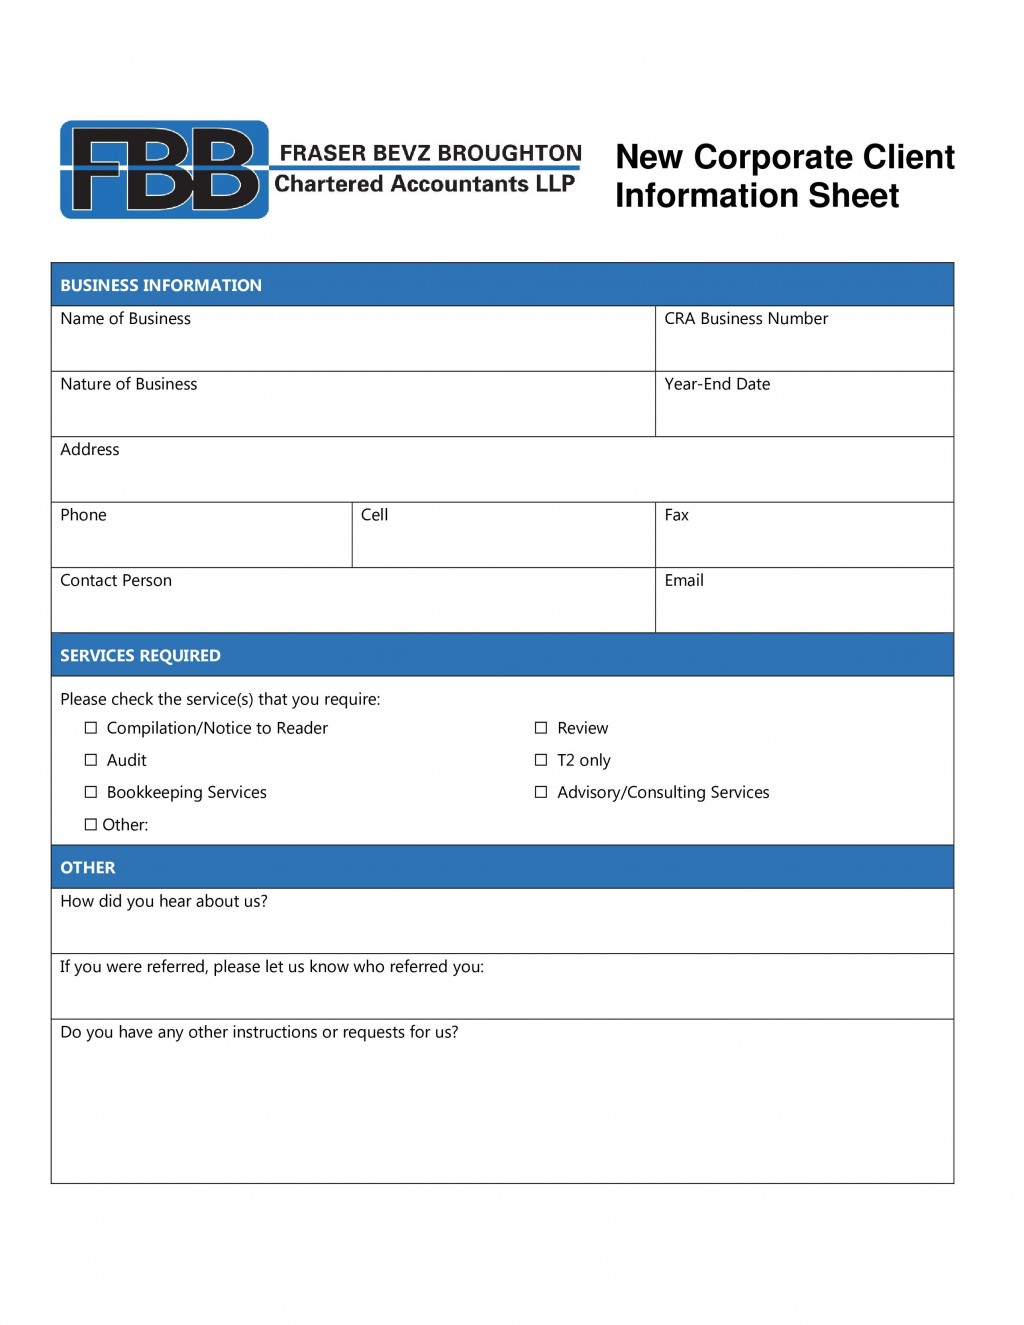 001 Staggering Customer Information Sheet Template Image  New Info Excel SpreadsheetLarge